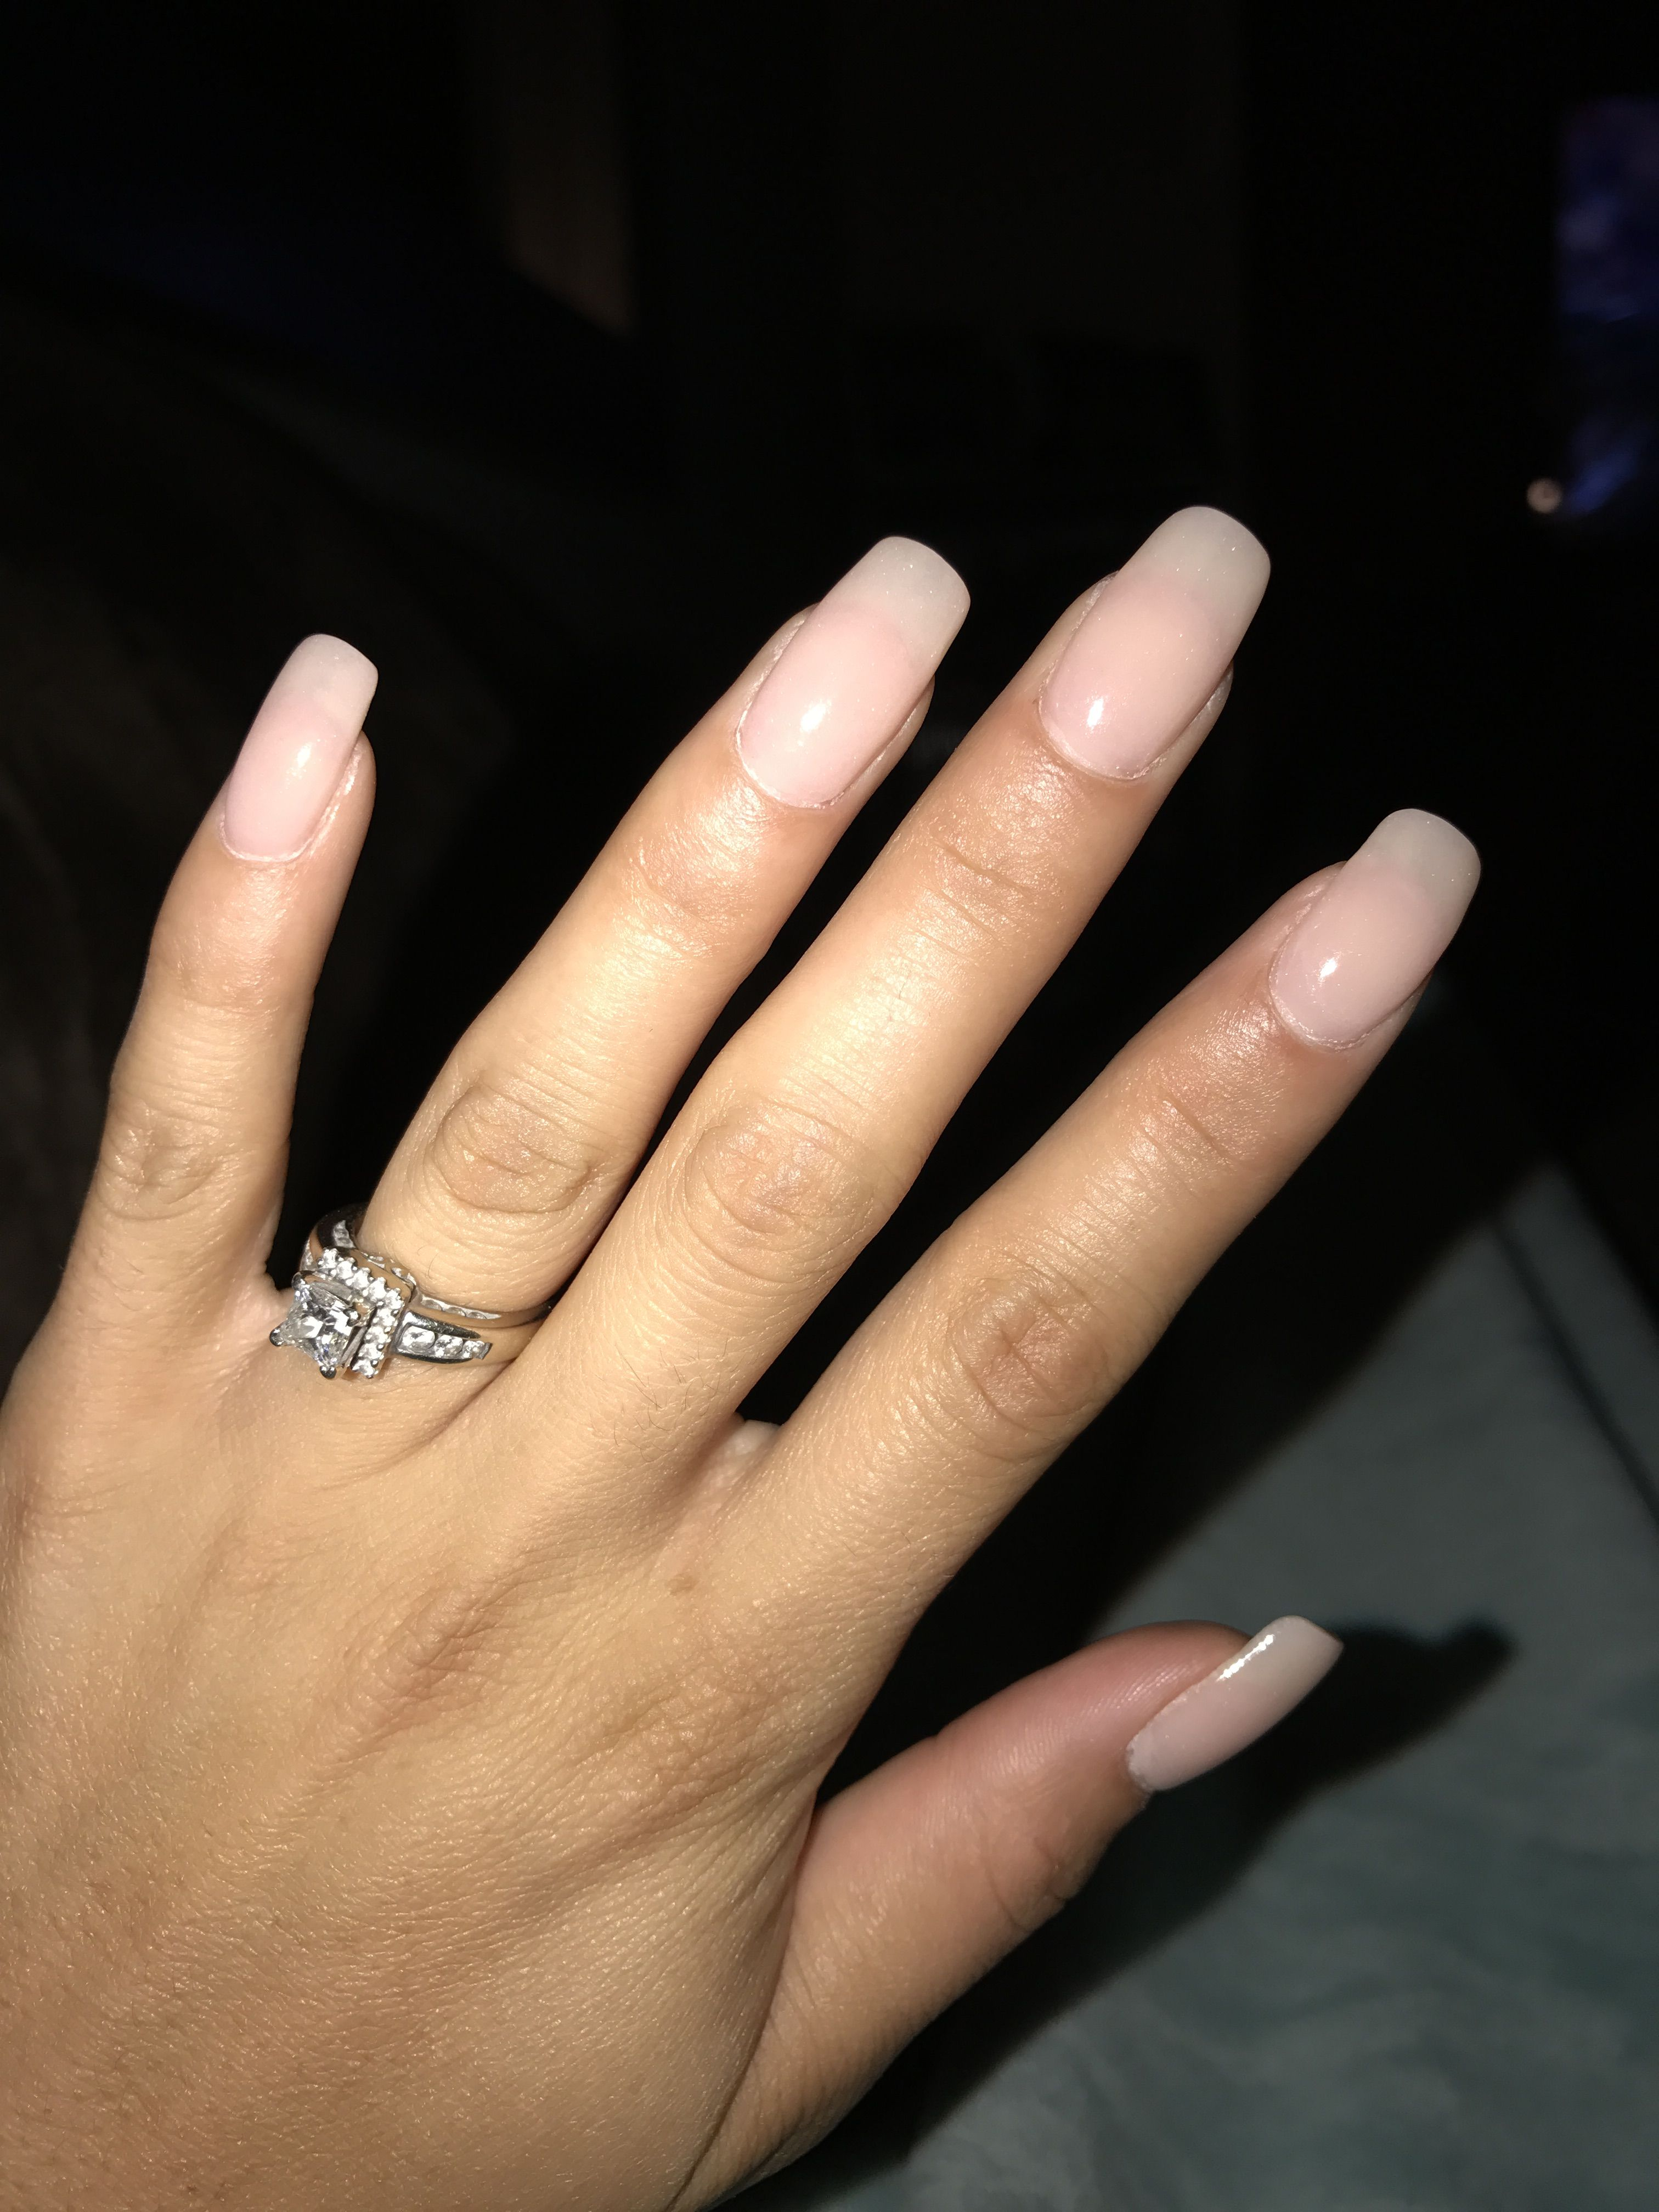 SNS nails done at 5280 nails & spa in Denver. Nail color 134 | Nails ...